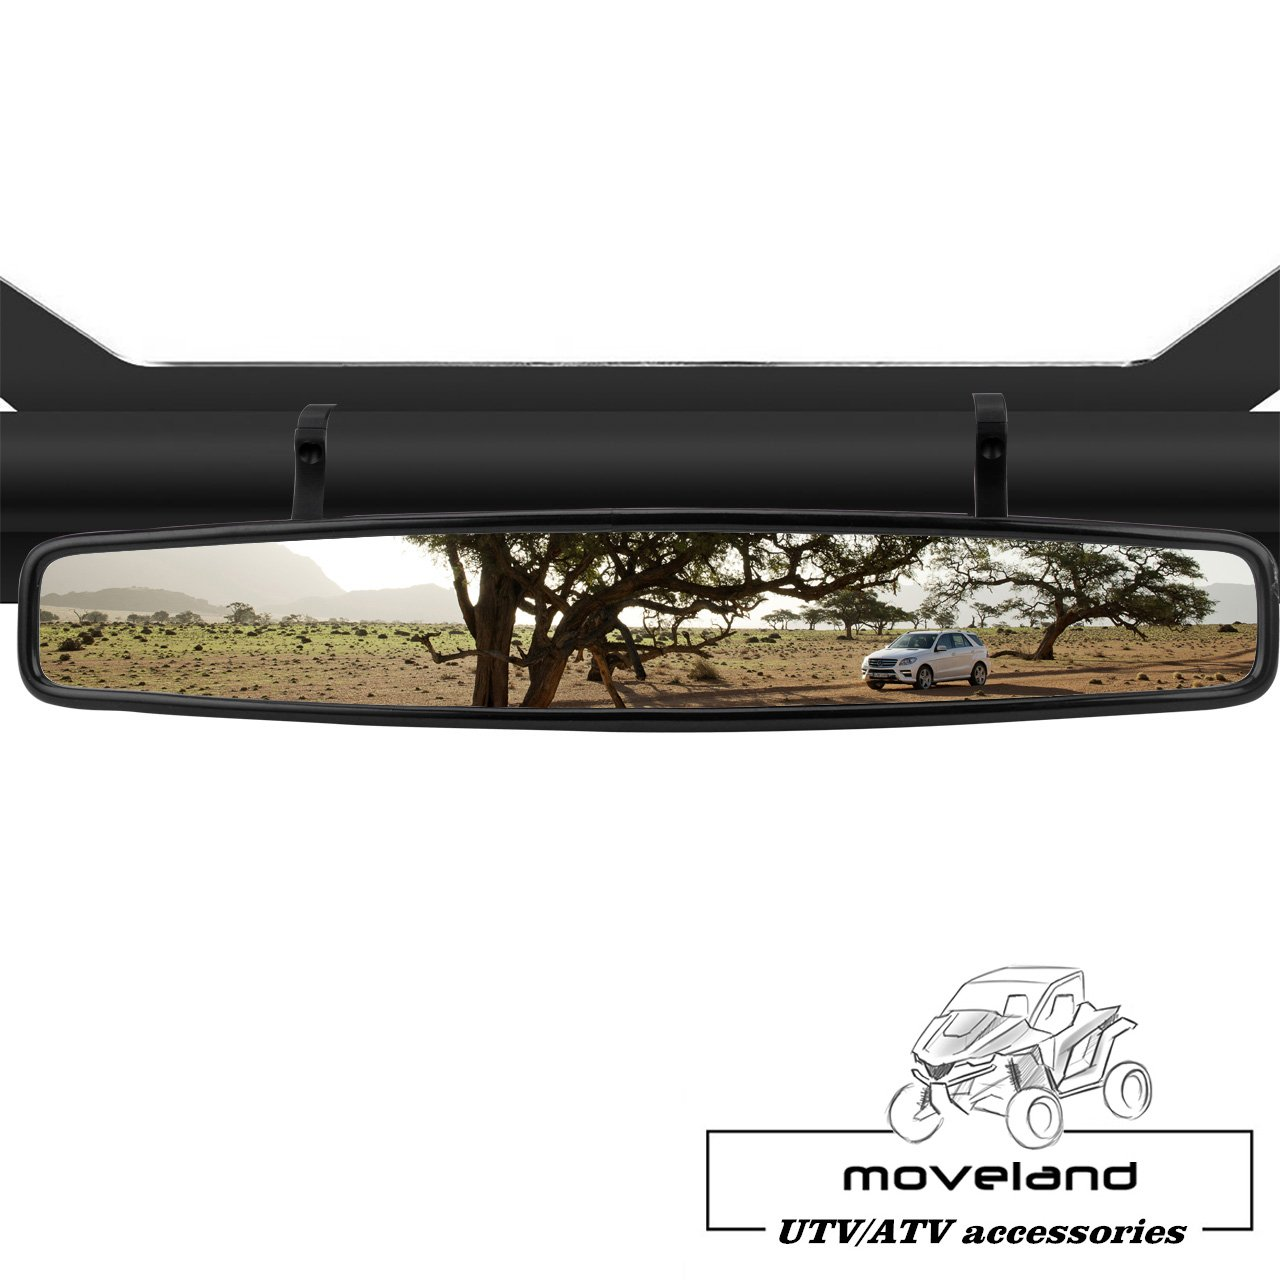 15'' Wide Angle UTV Rear View Race Mirror with Anti-Scratch Shatterproof Glass, Moveland Convex Mirror with 1.75-inch Clamp for Polaris RZR 800 1000 S 900 XP 1000 and More by moveland (Image #5)